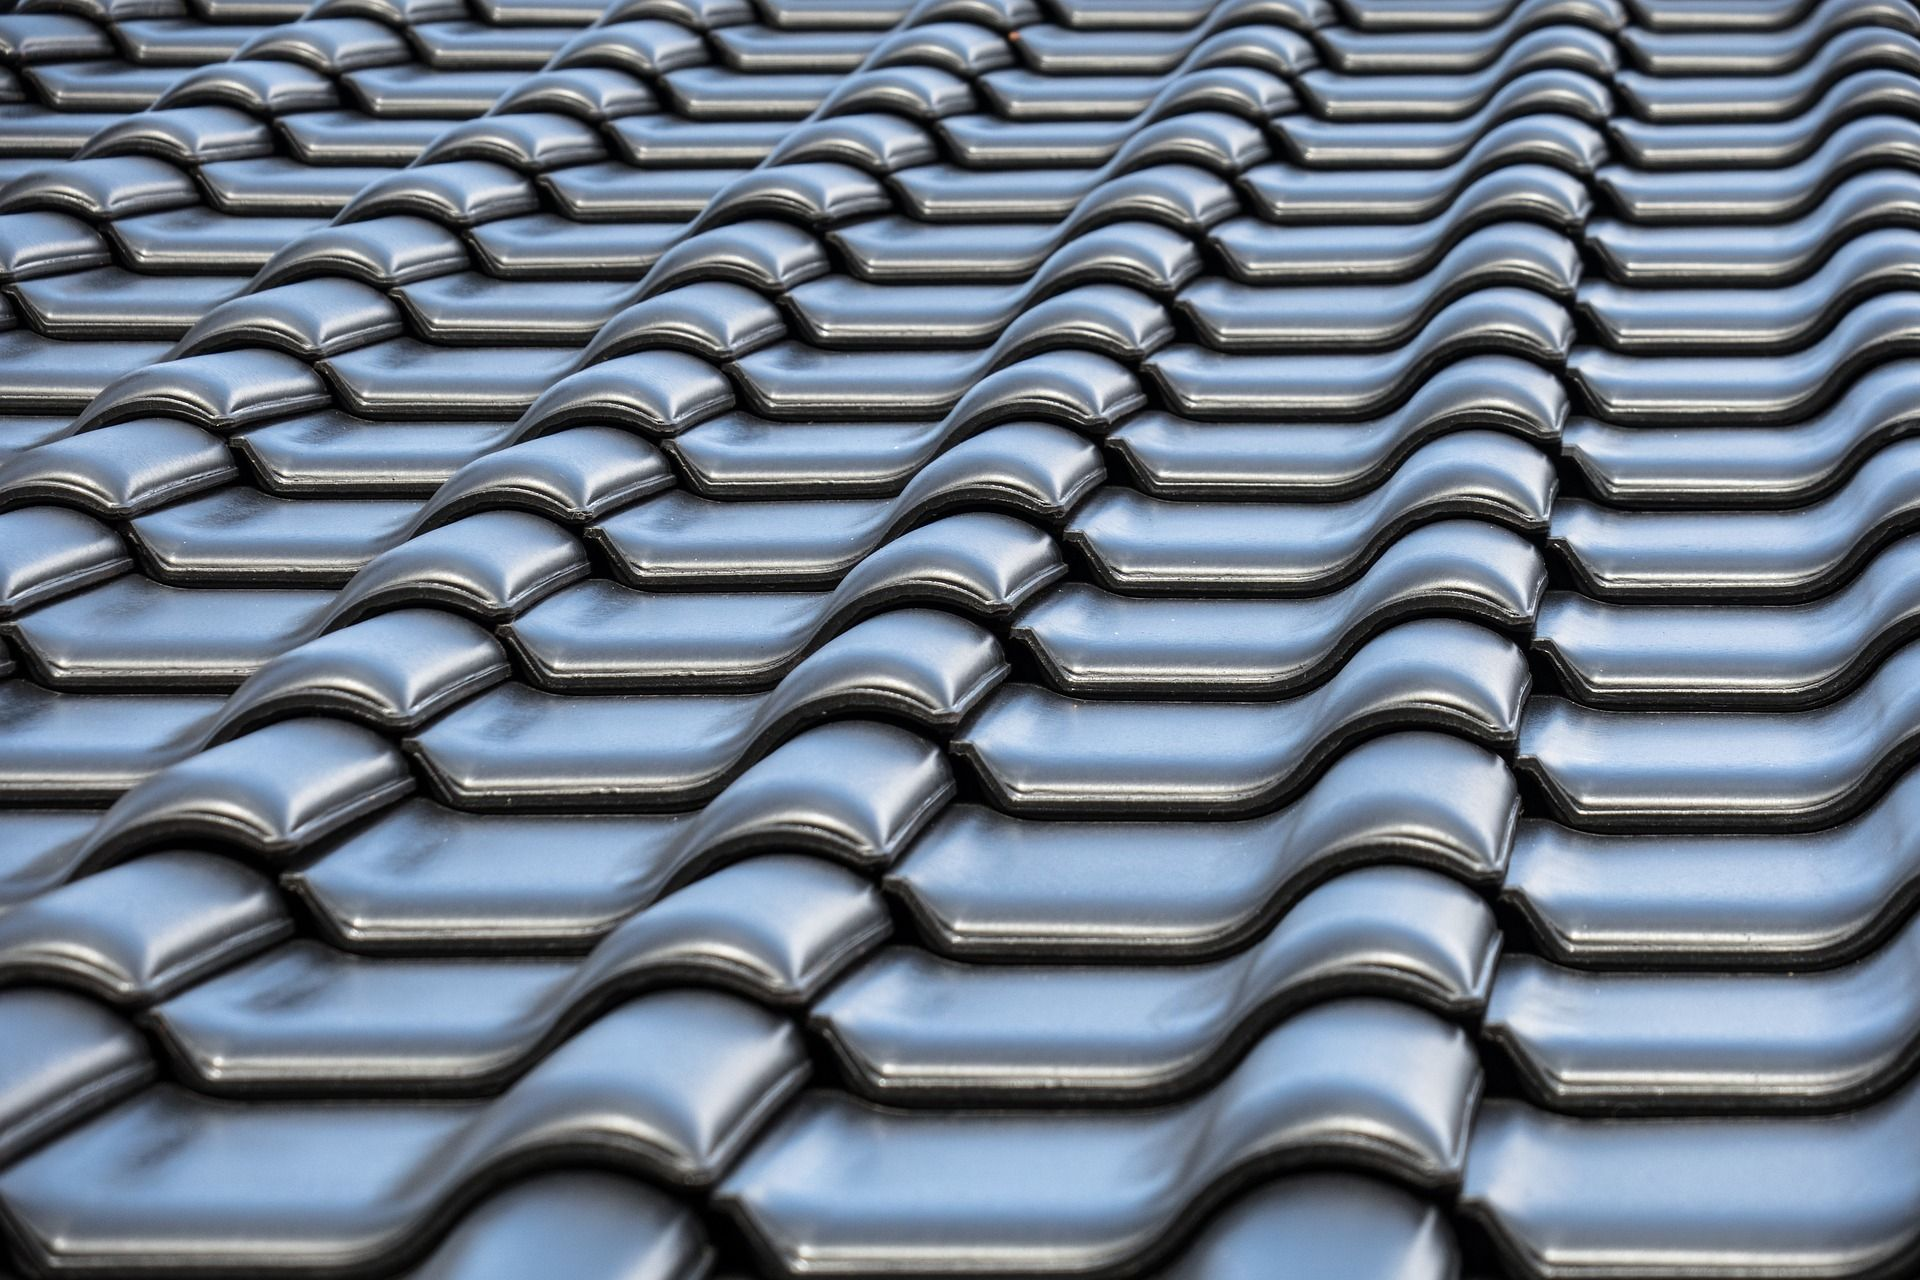 In 2019 There Are Roofs Created To Protect Against All Kinds Of Things You Can Get Roofing That S Designed To Protect Against Roof Concrete Garages Roof Work